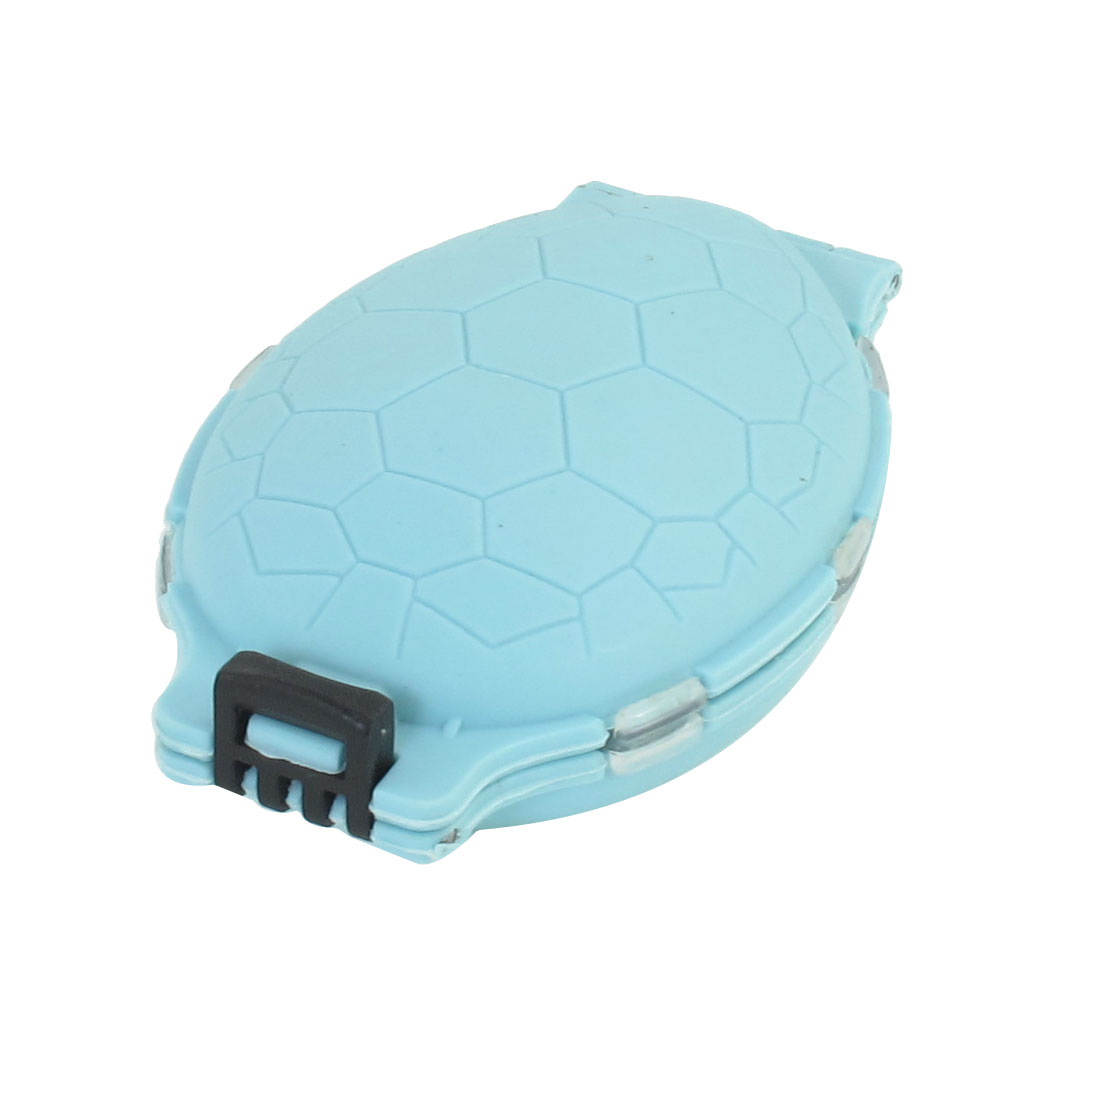 Plastic Tortoise Shell Design Double Sides Fishing Hook Box Case Baby Blue